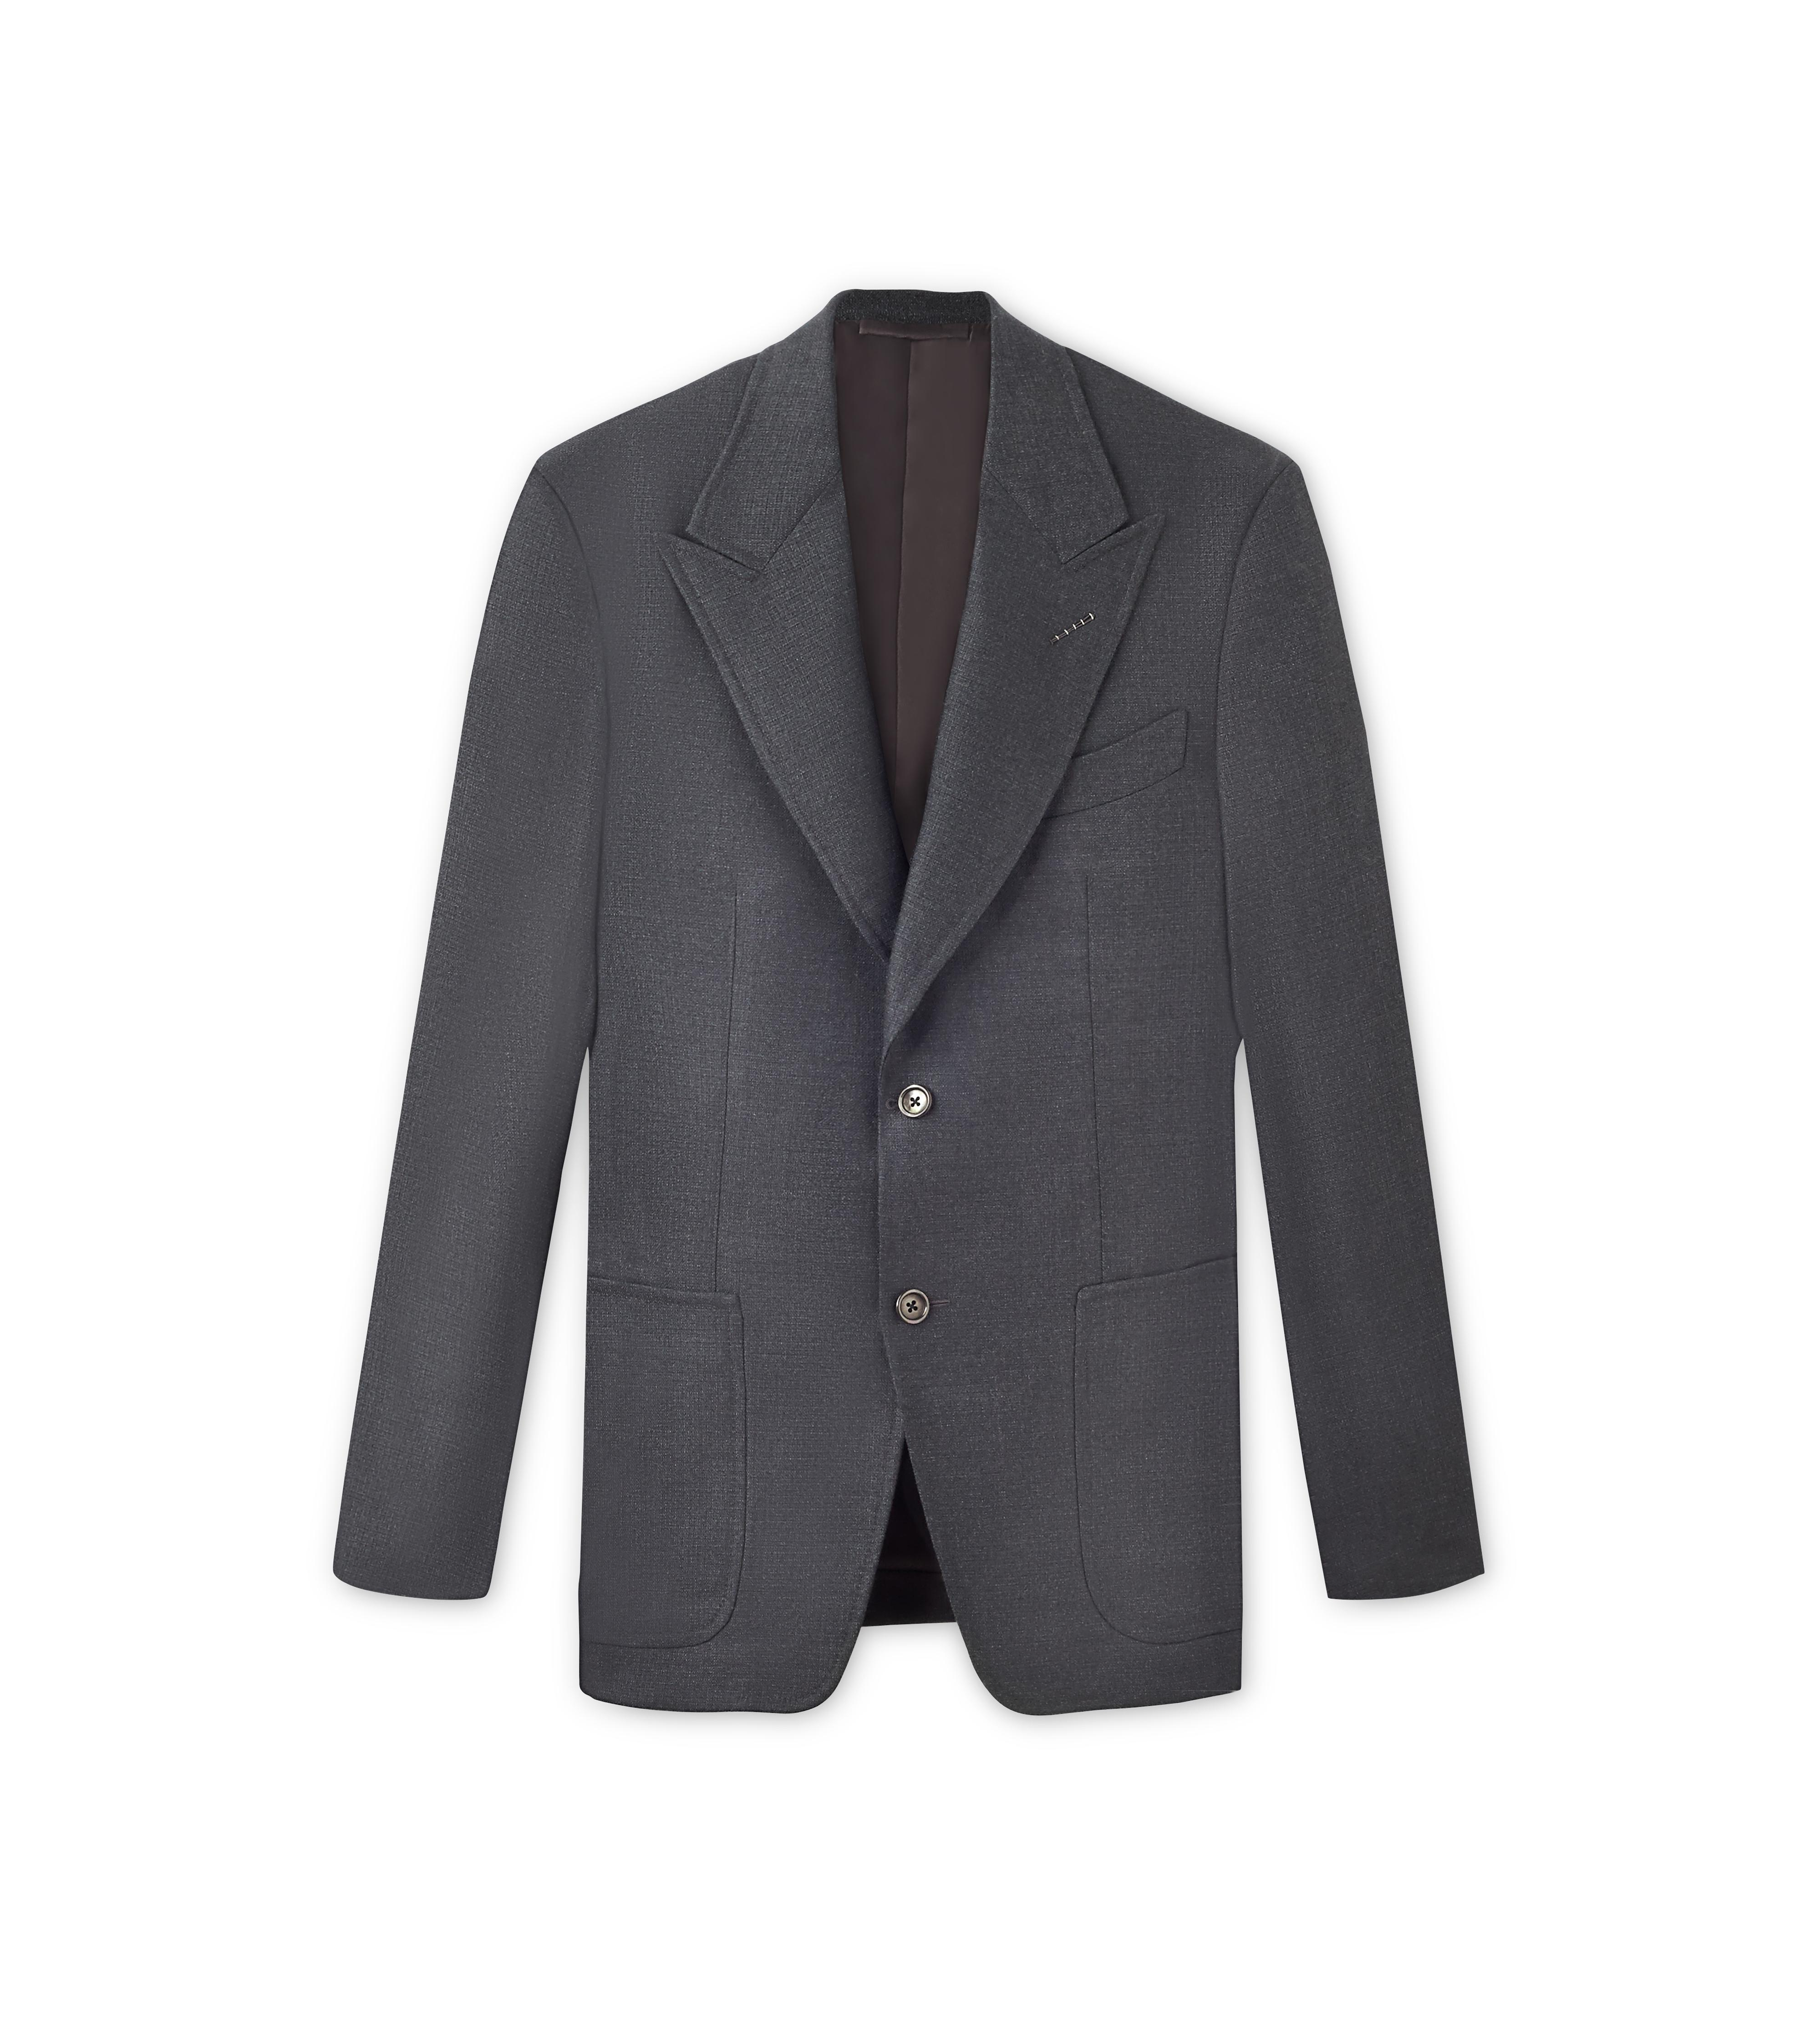 WOOL SILK DELAVE SPENCER SPORT JACKET A thumbnail